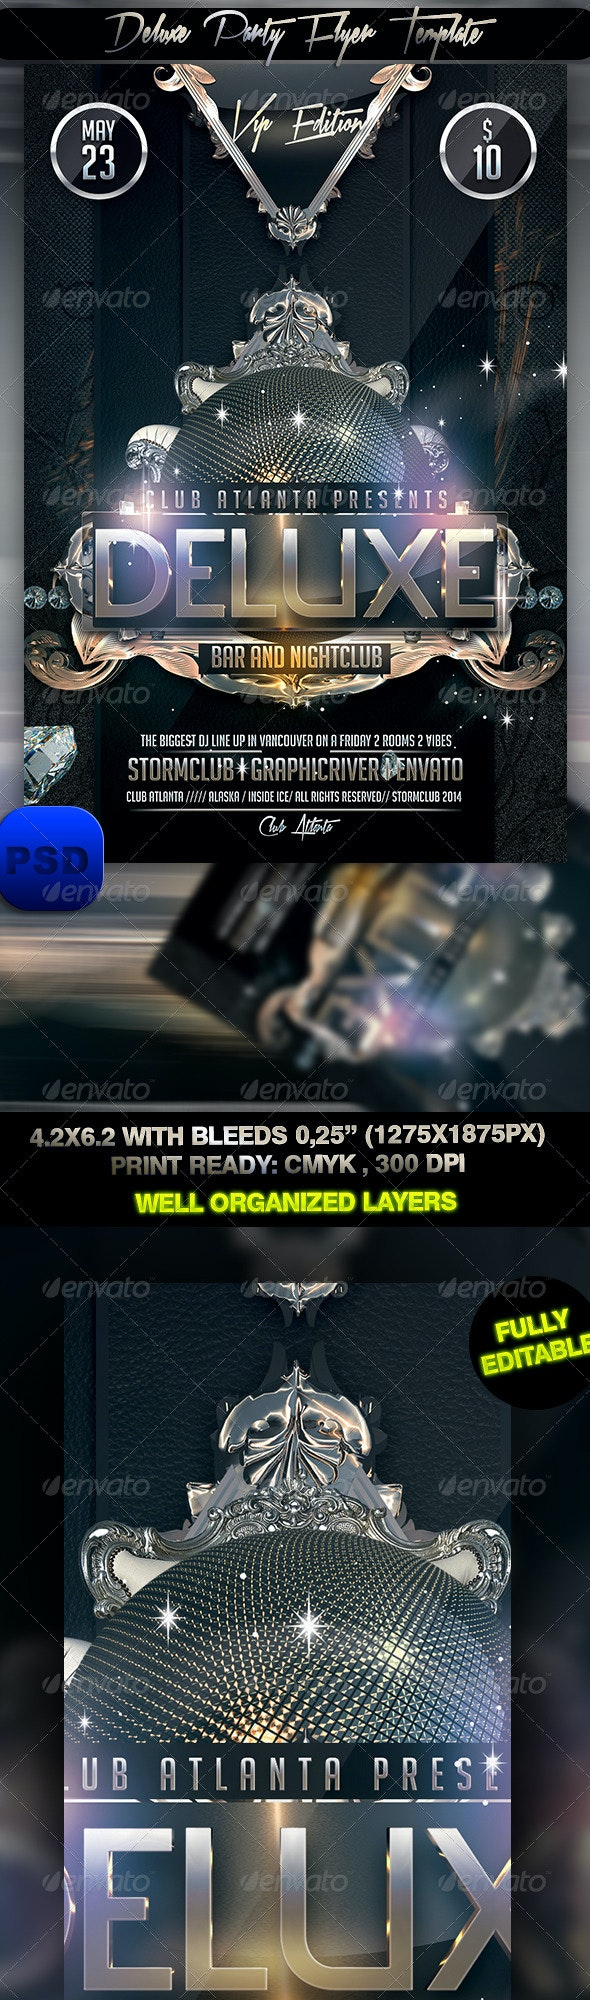 Deluxe Party Flyer Template - Events Flyers